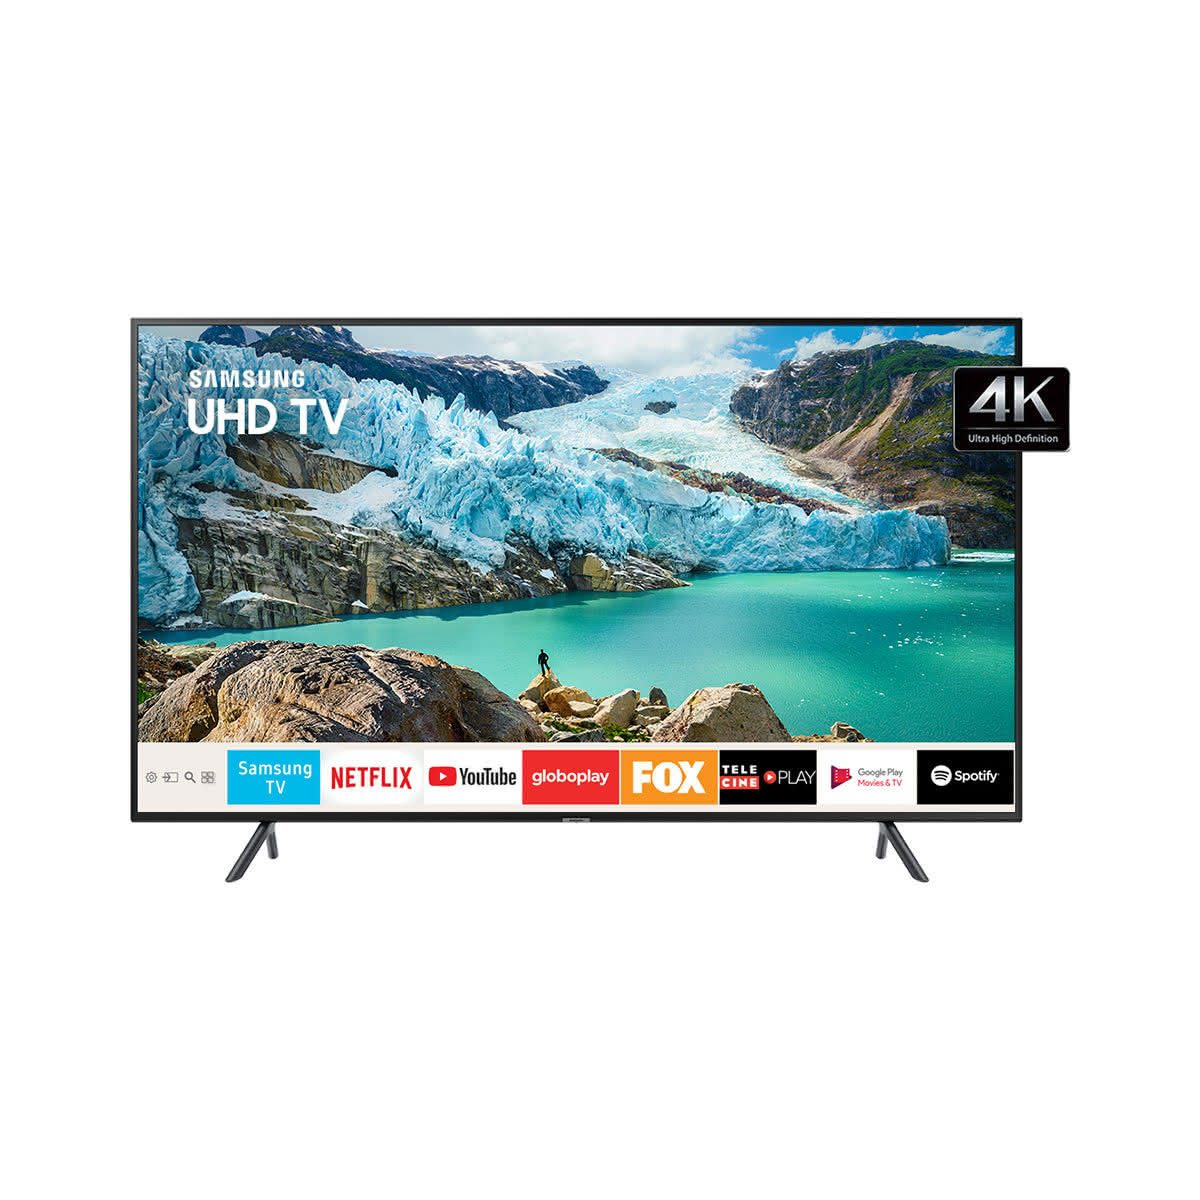 Review da linha RU7100 Samsung de Smart TV 4K UHD 8